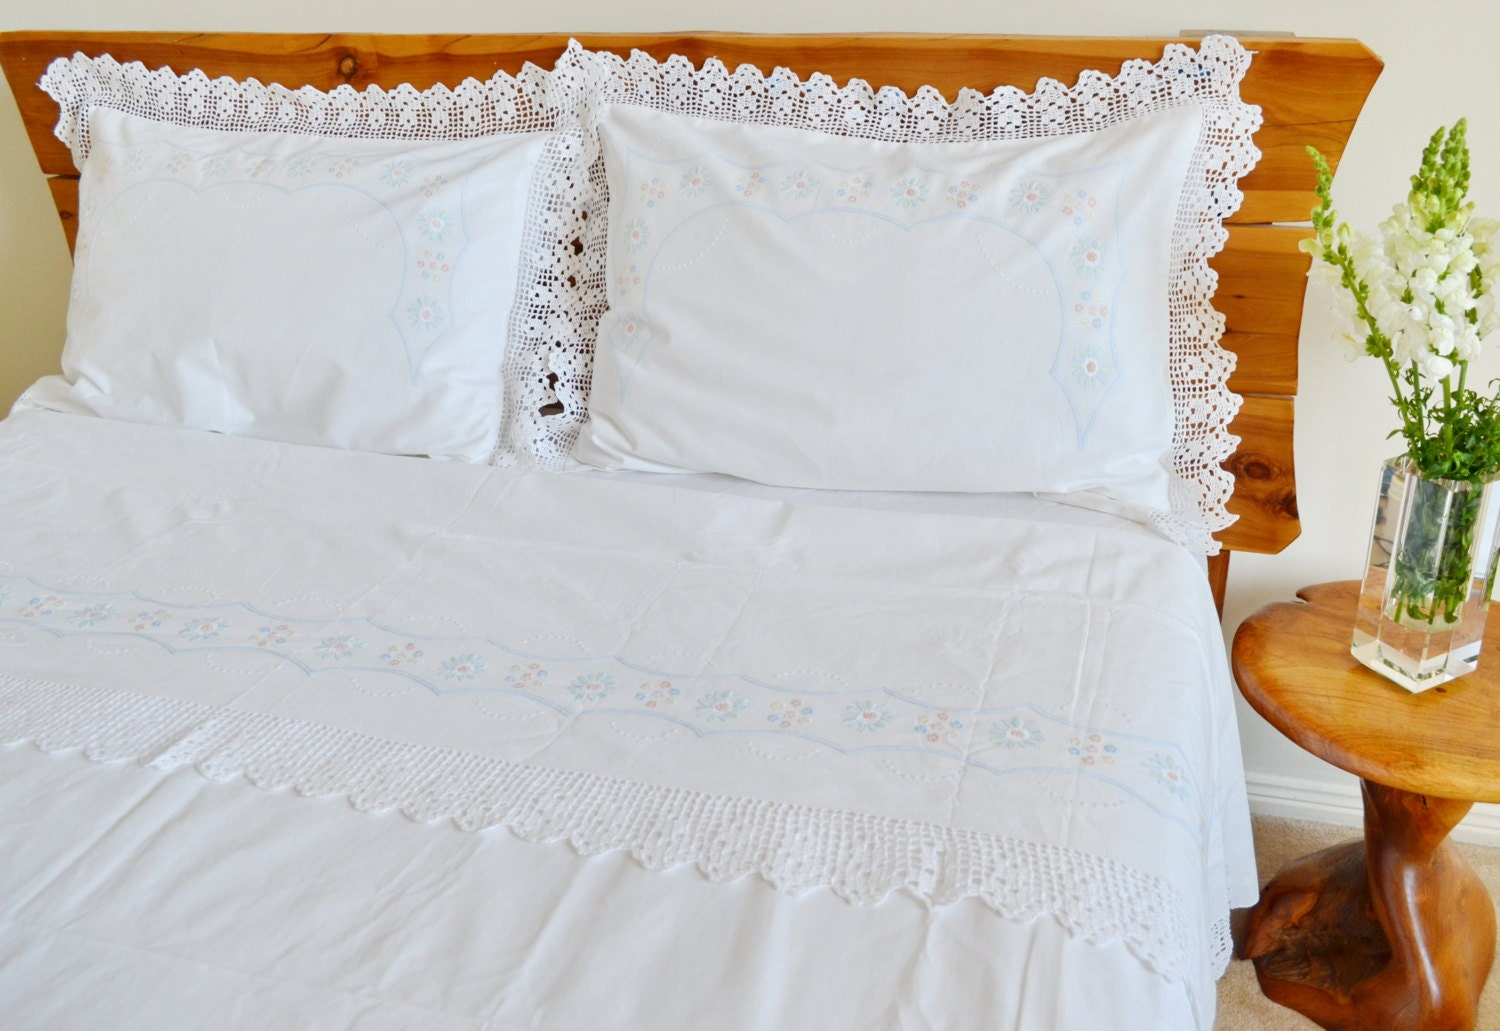 Wedding bed sheet set -  Zoom